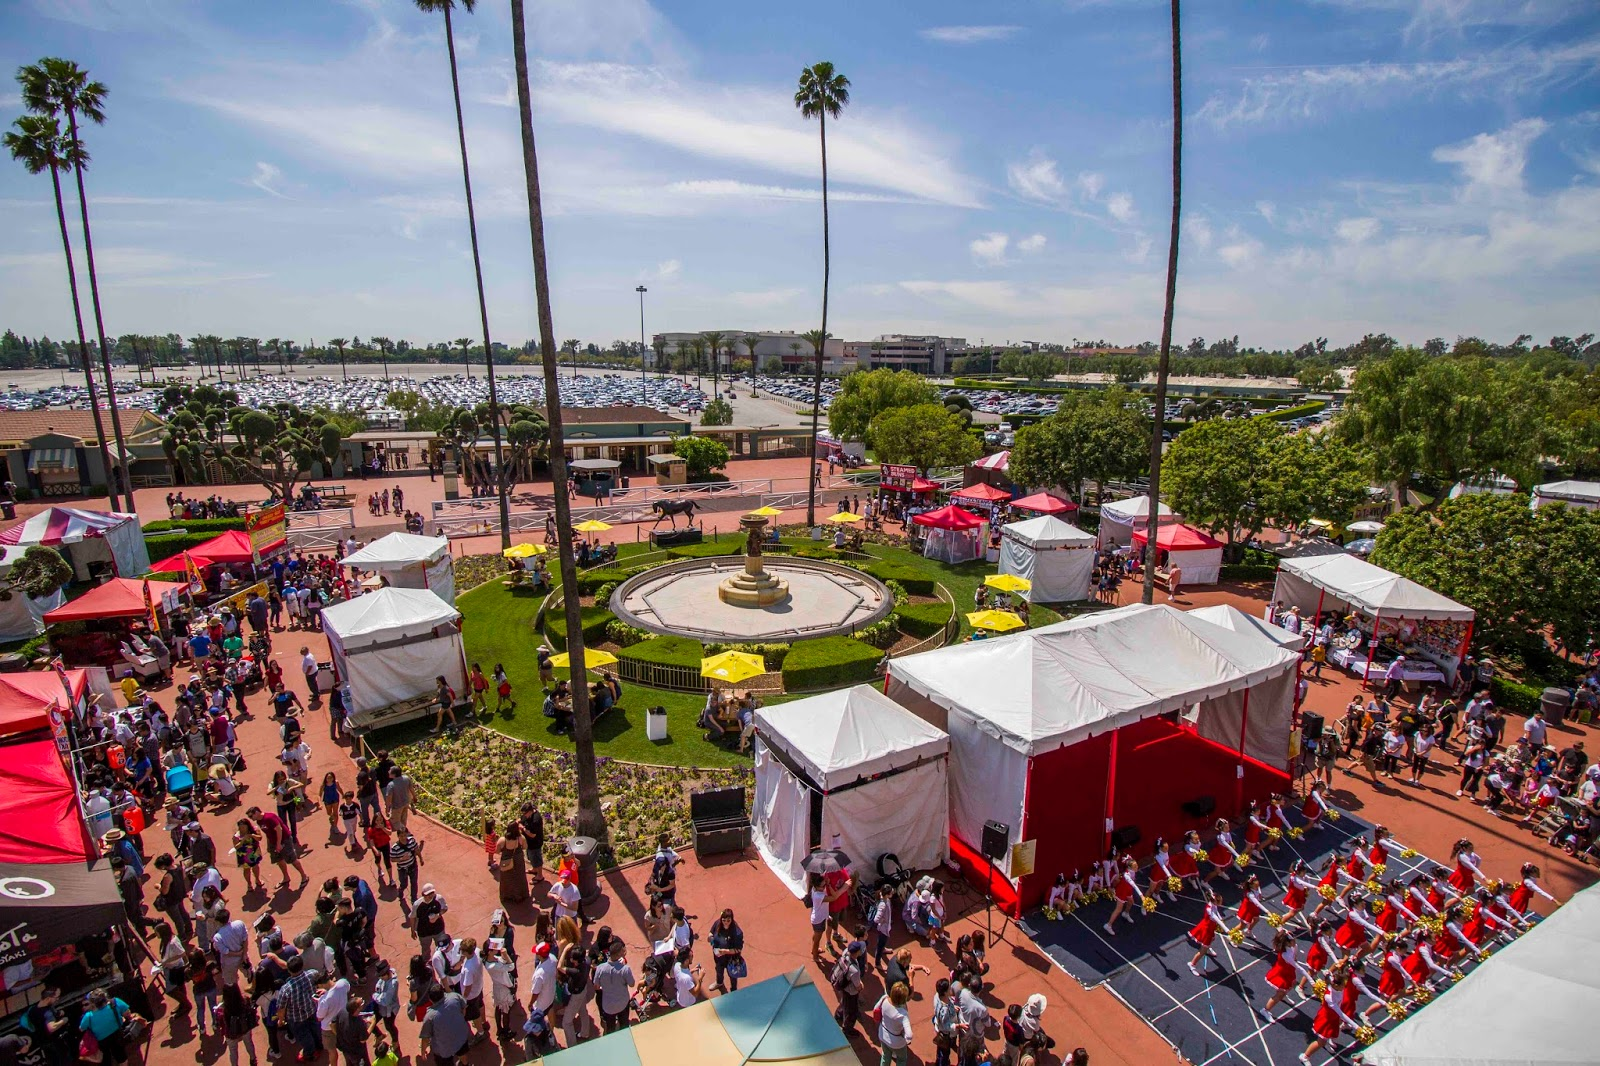 April 8 | Socal's Biggest Japanese Spring Festival Is Coming To Santa Anita Park